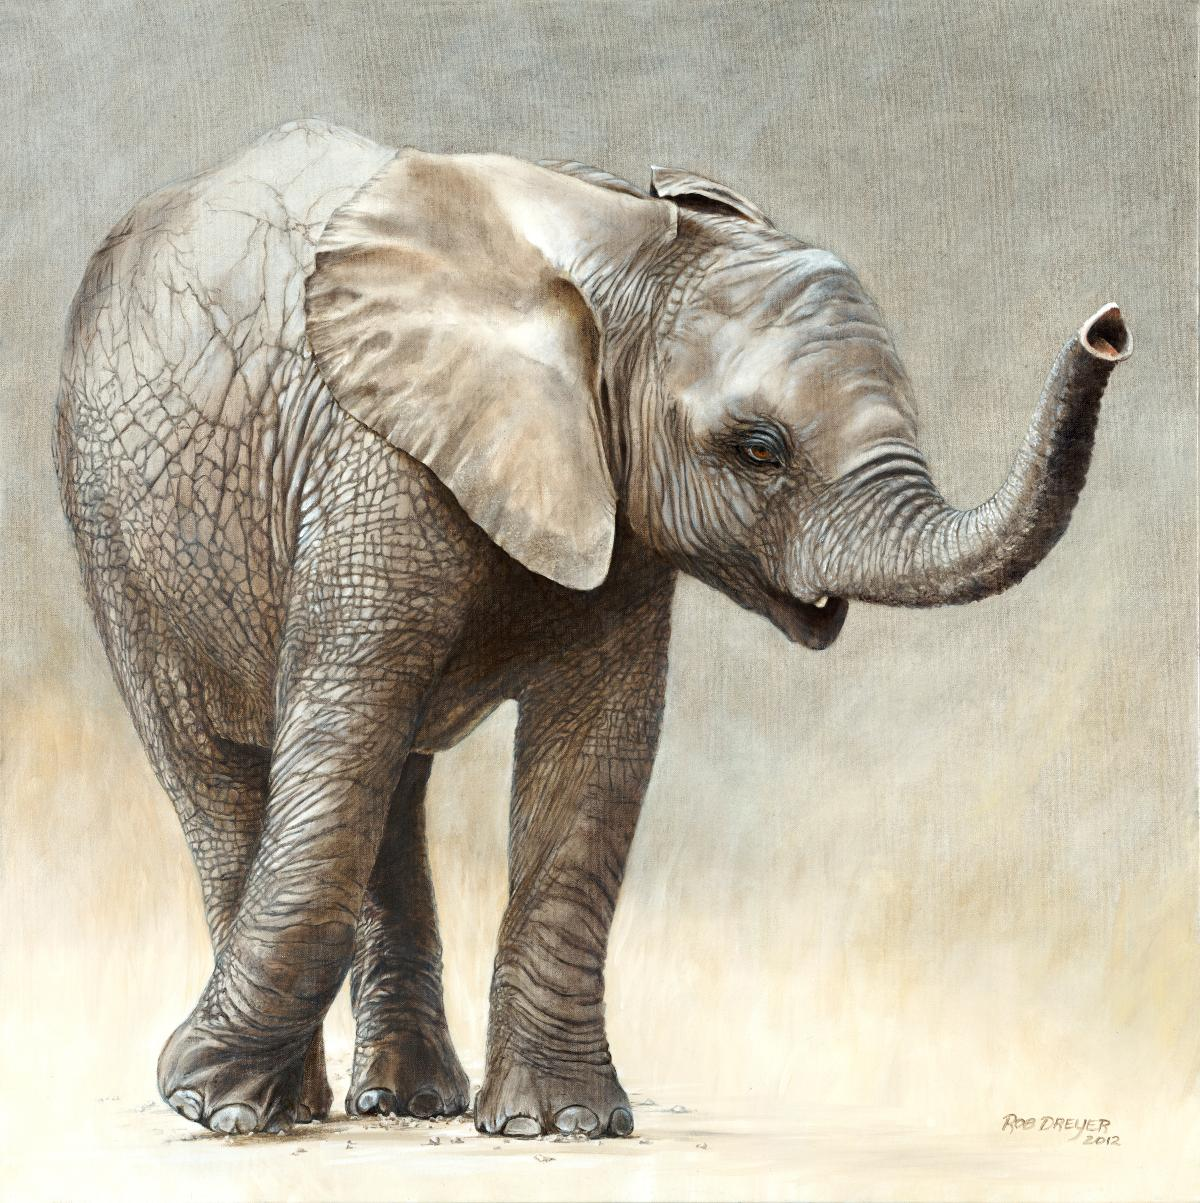   Wallhanging by Rob Dreyer   Artists for Conservation